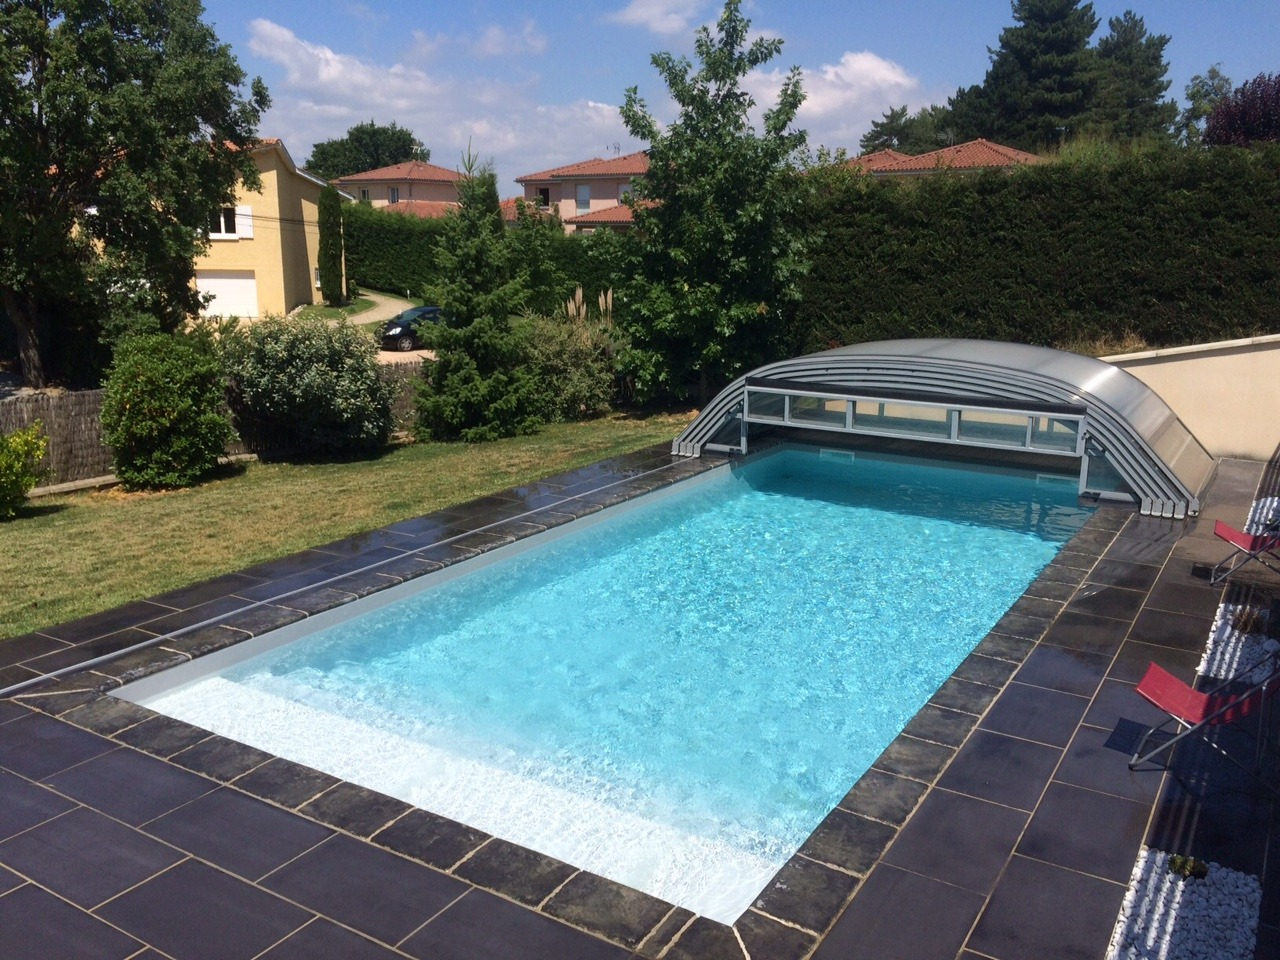 Elitys mianso abri de piscine bas t lescopique ec 39 creation for Abri de piscine